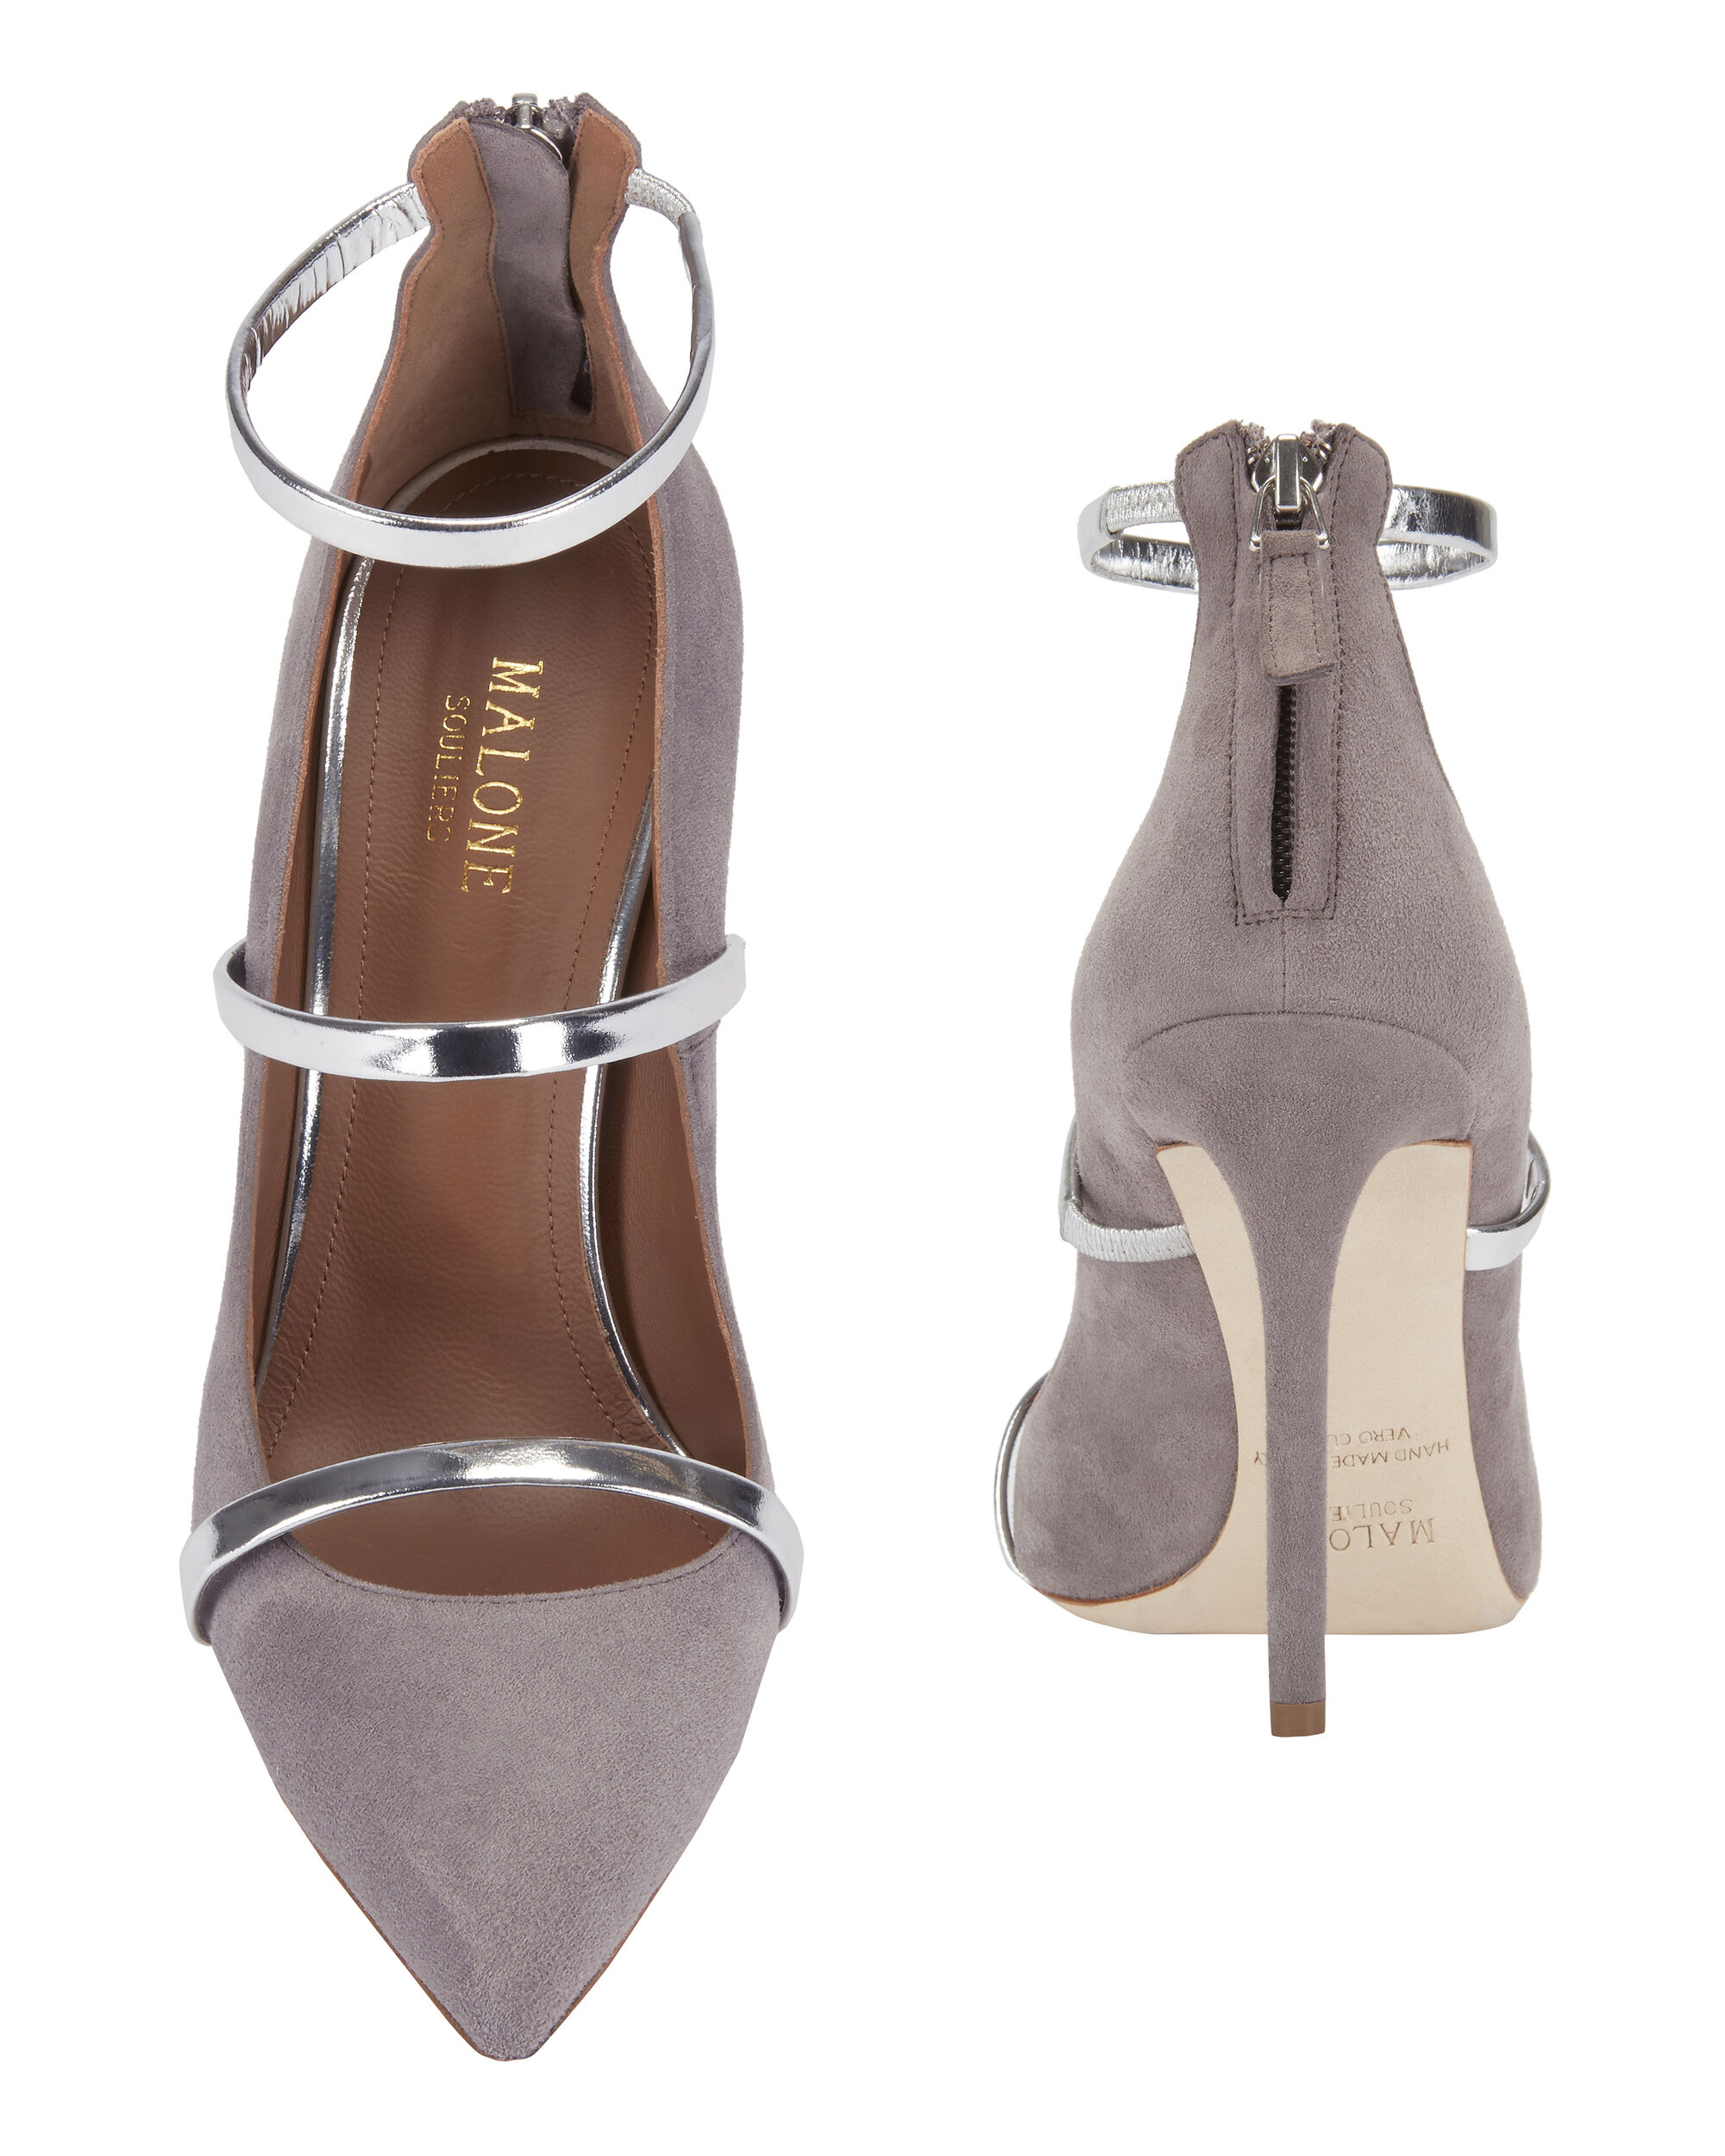 Robyn Suede Pumps, GREY, hi-res